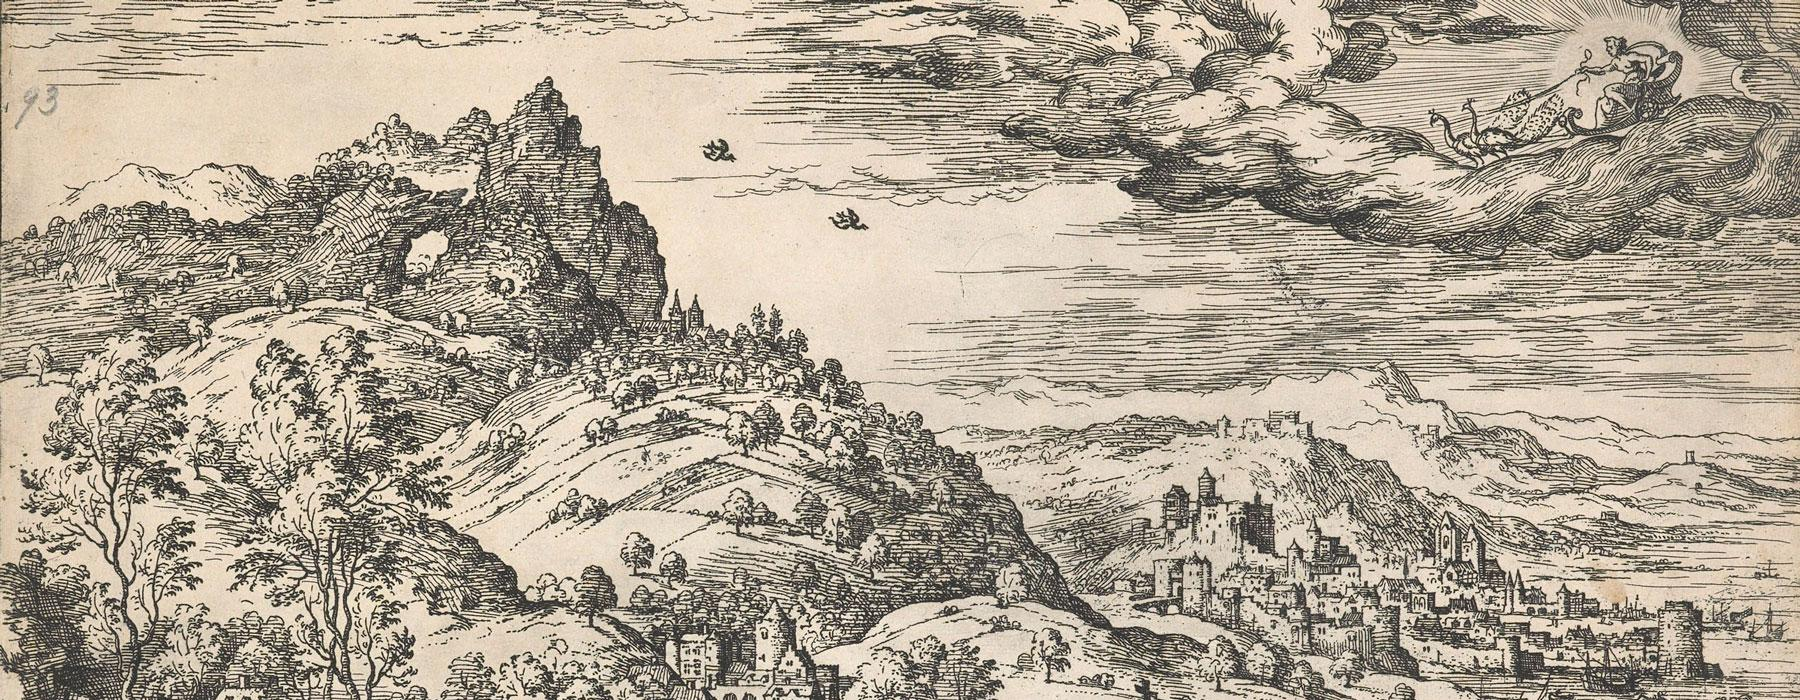 Detailed etching of a landscape with biblical and mythological scenes